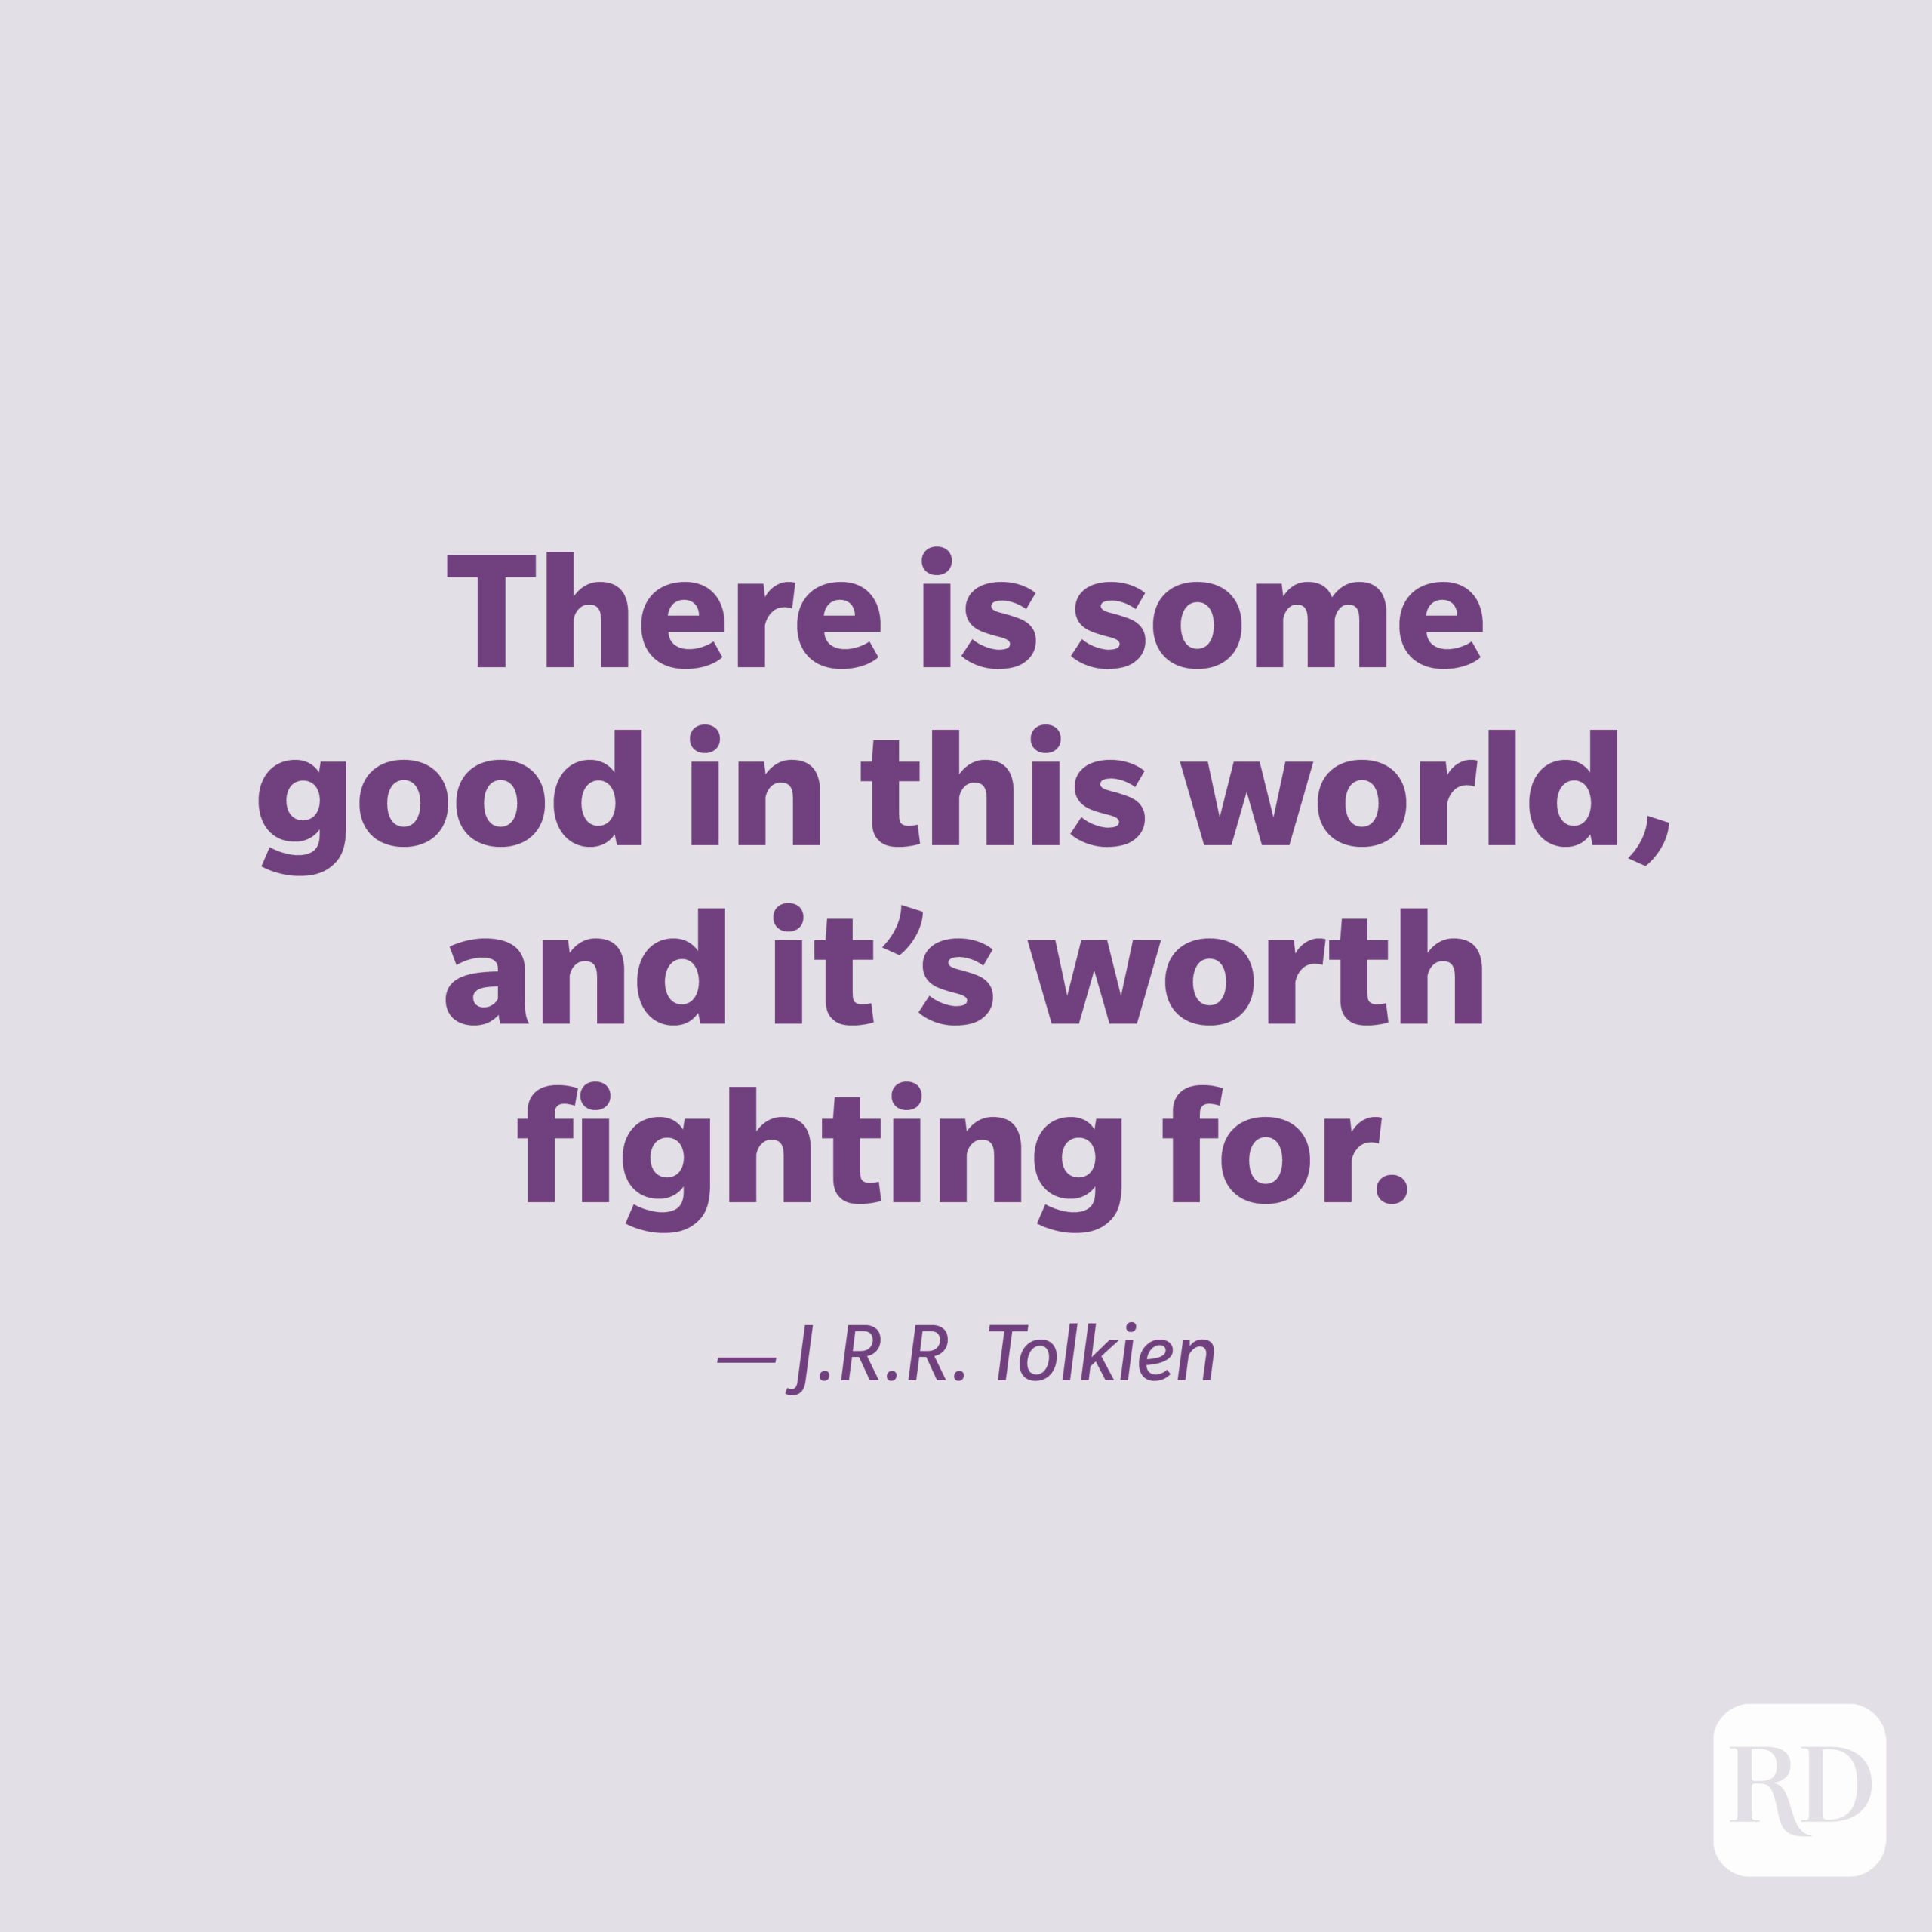 """""""There is some good in this world, and it's worth fighting for."""" —J.R.R. Tolkien"""